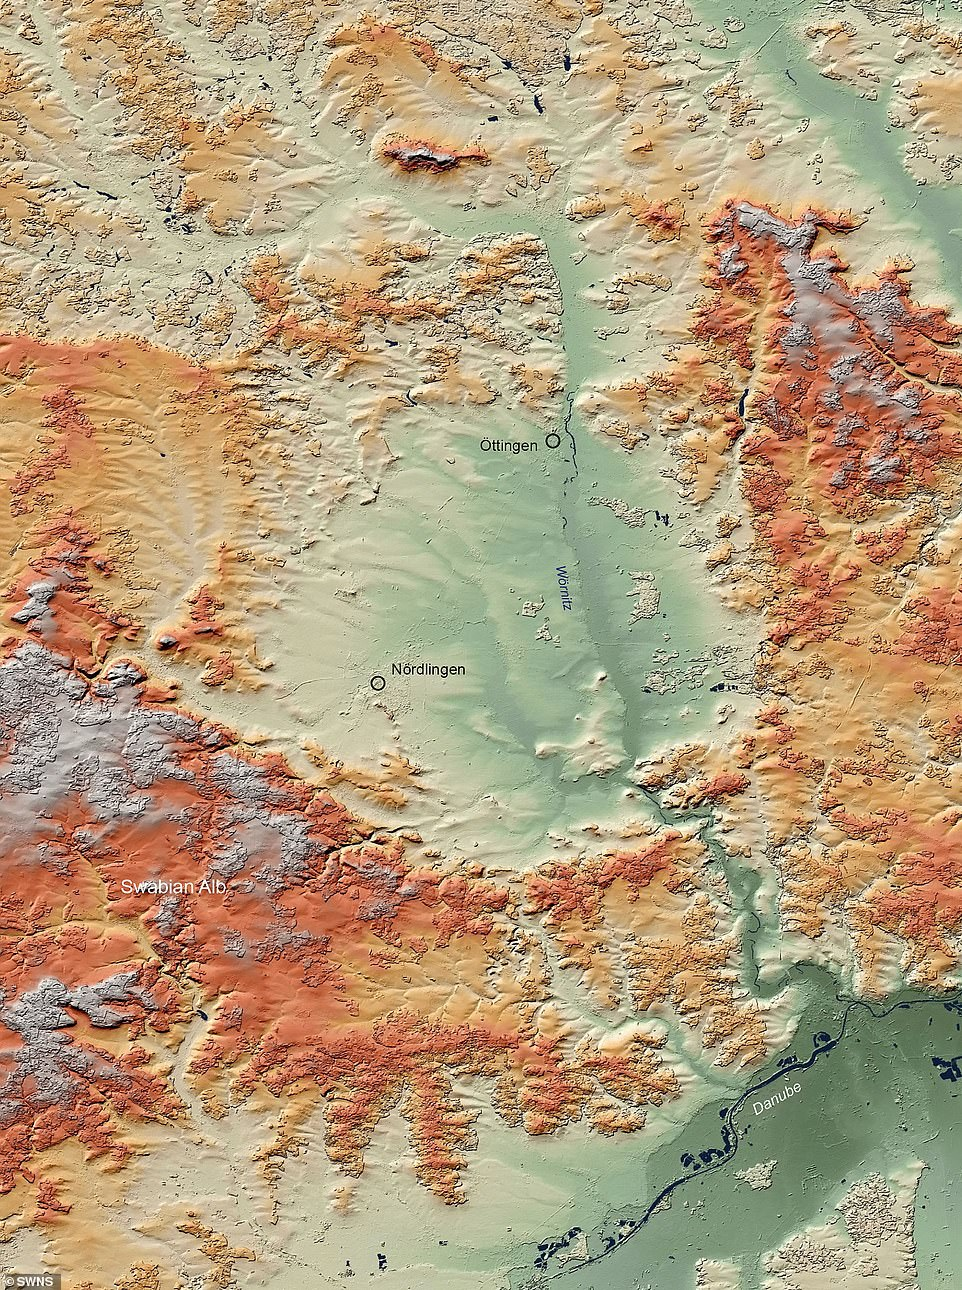 Most crusts, such as those in Germany, live a few thousand years before the ridge (pictured) is filled or damaged, and then can only be identified by the unique changes in the Earth's minerals from the shock wave caused by the impact.